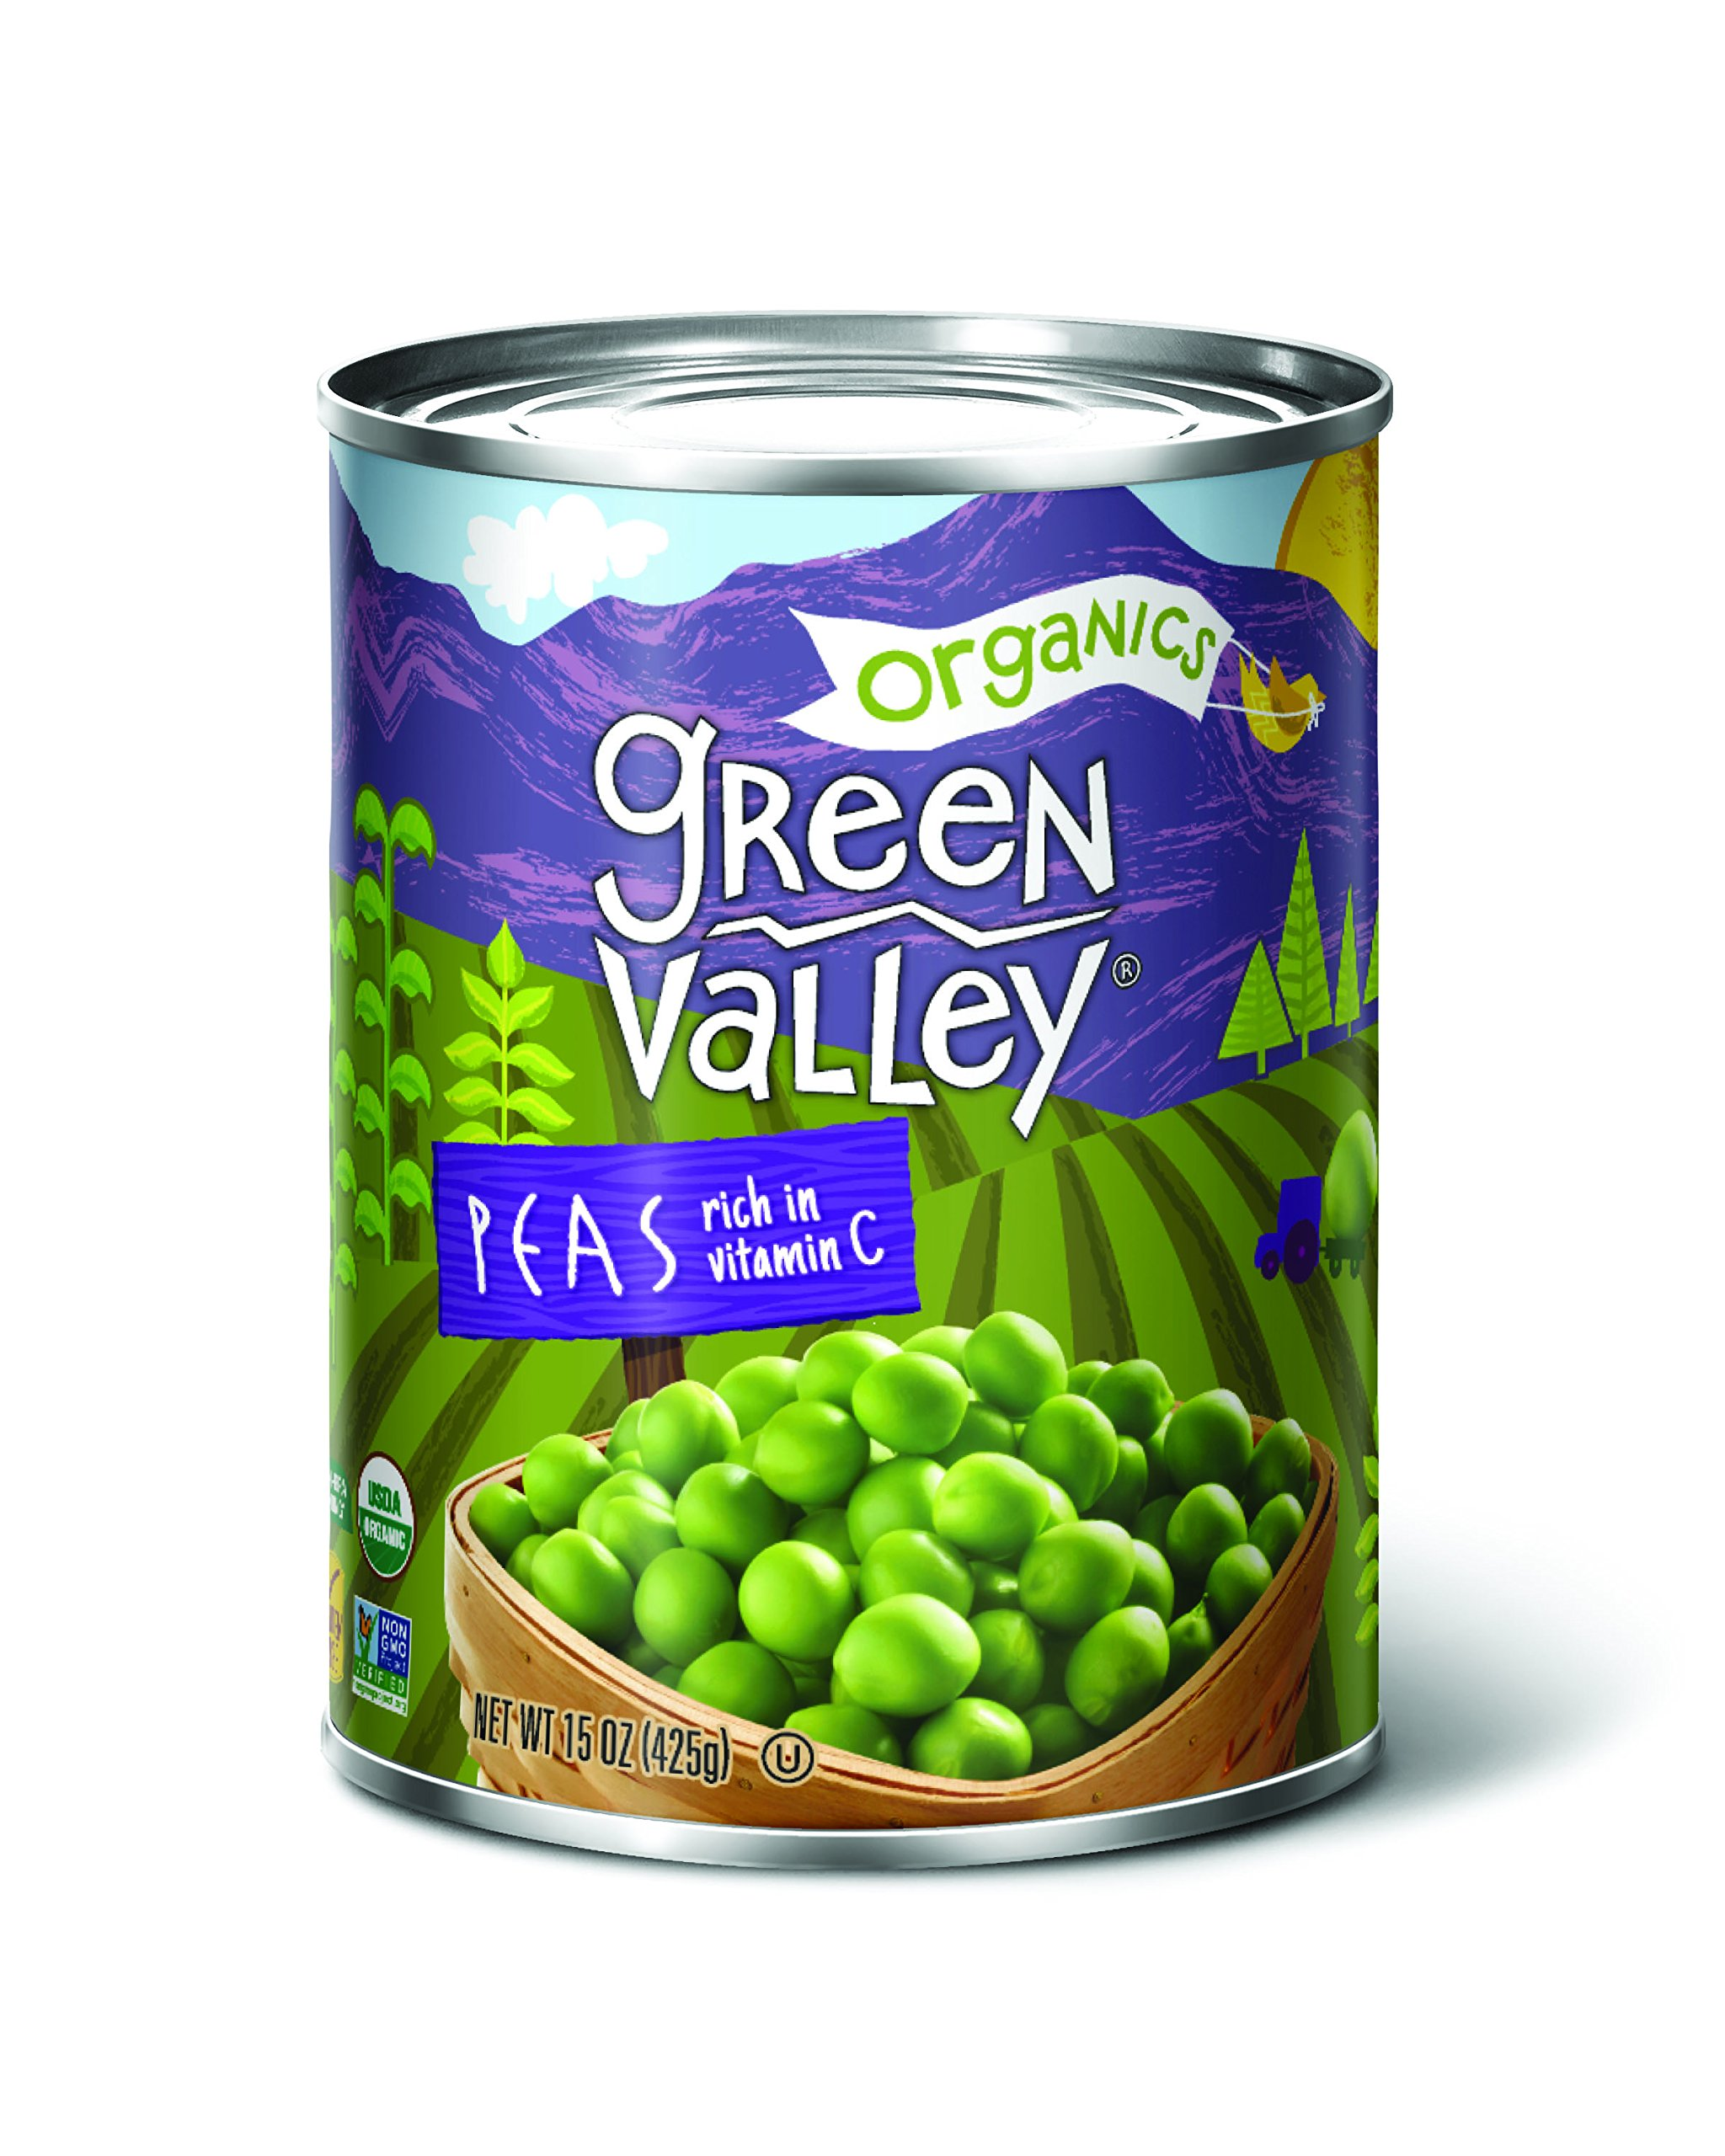 Green Valley Organics Sweet Peas, 15 Ounce (Pack of 12)